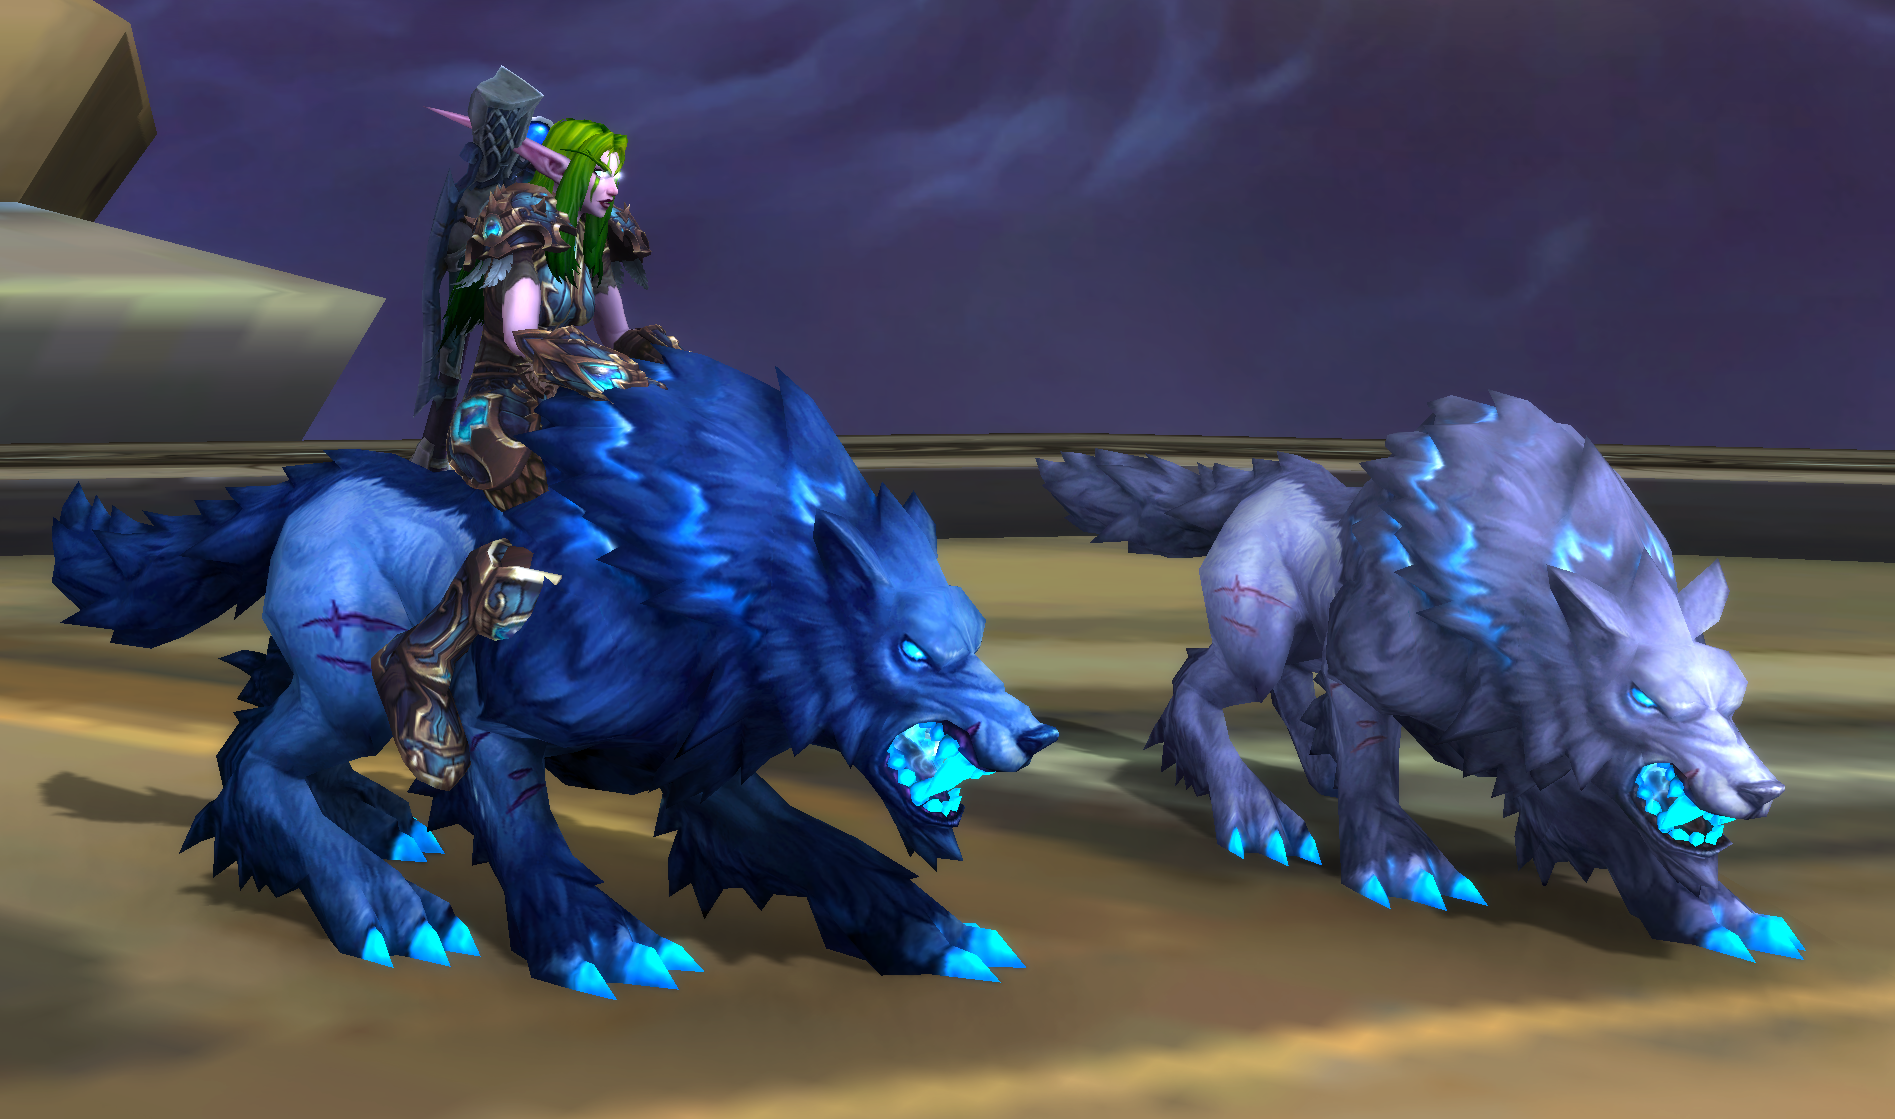 Hunters will be able to use Hati as a mount - General